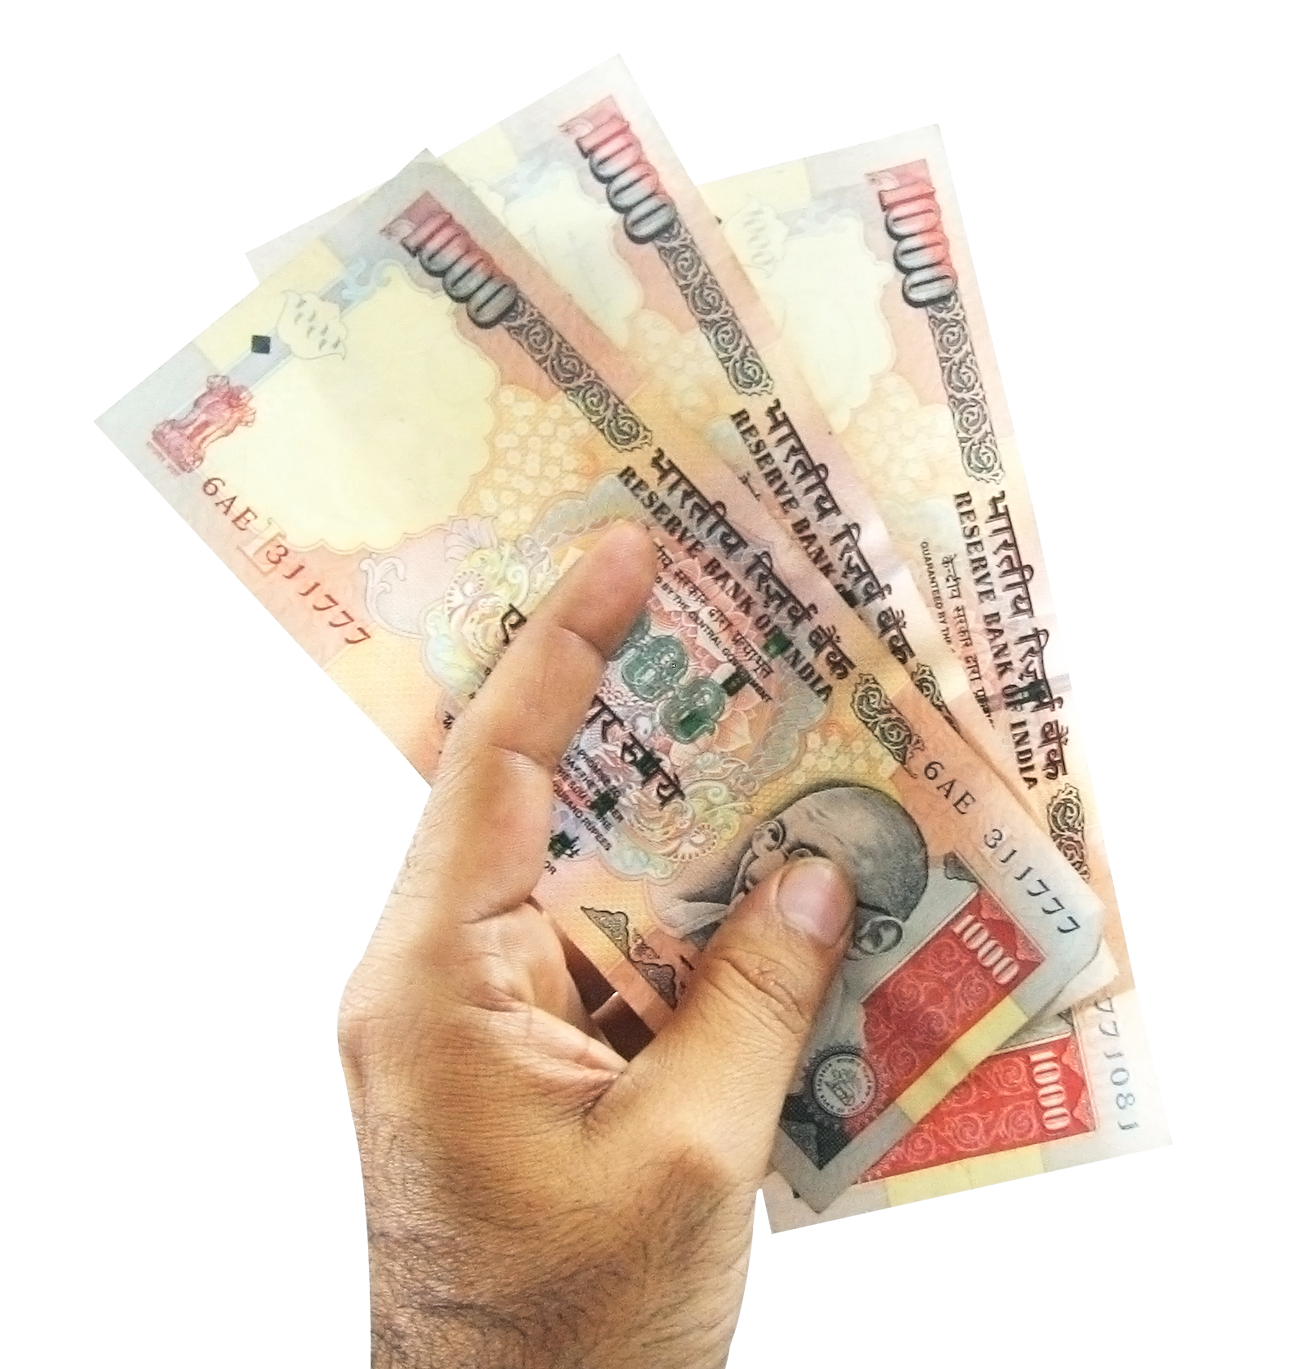 Indian currency transparent image. Money in hand png